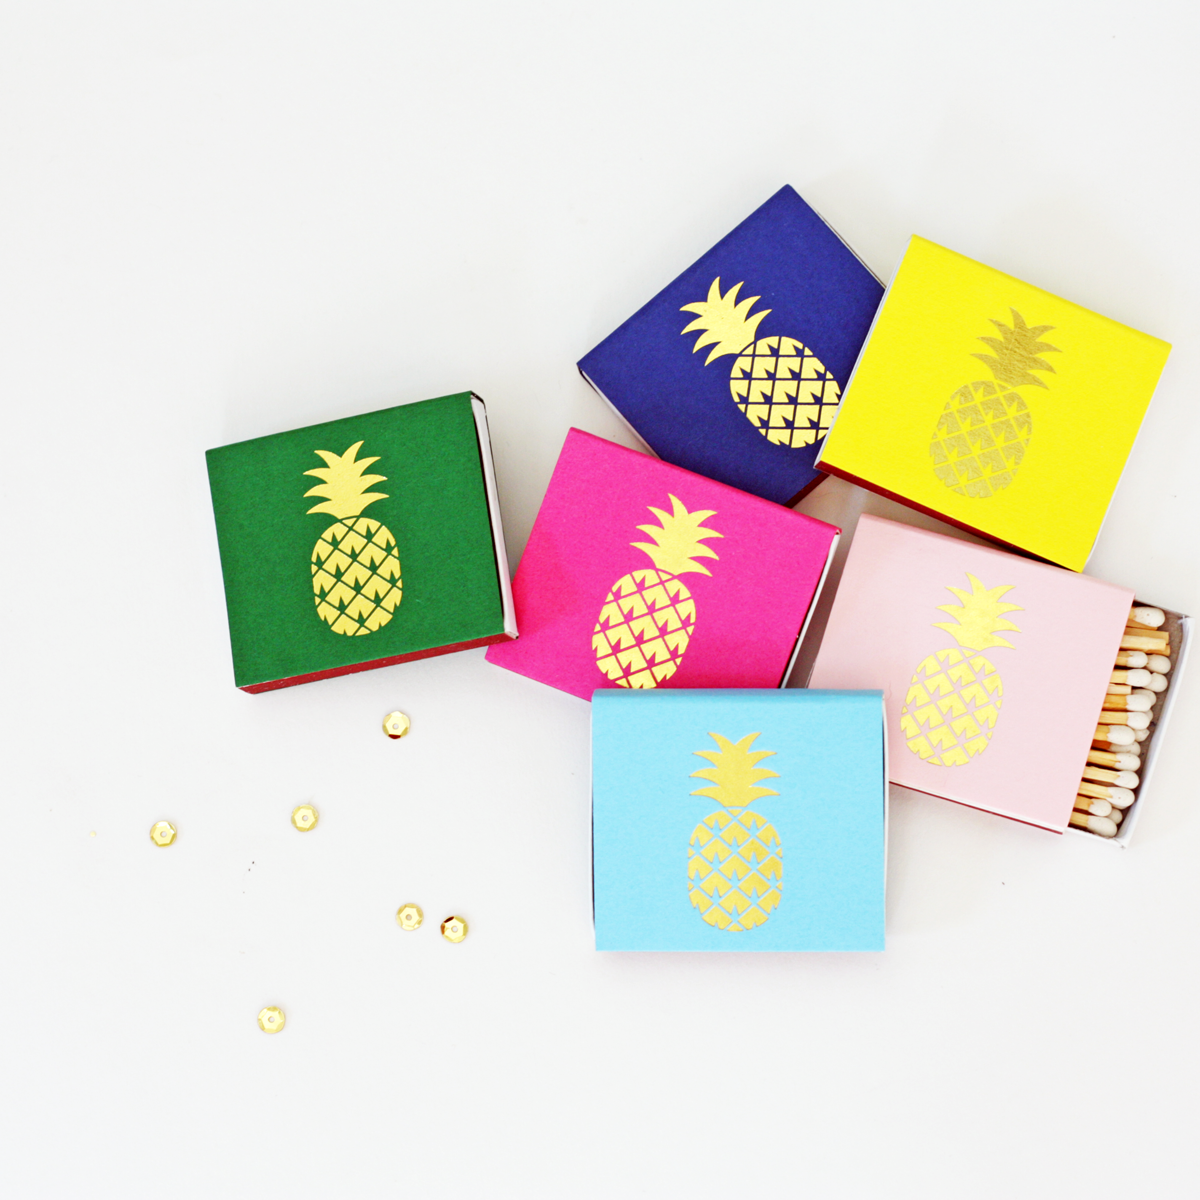 pineapple matches in gold foil